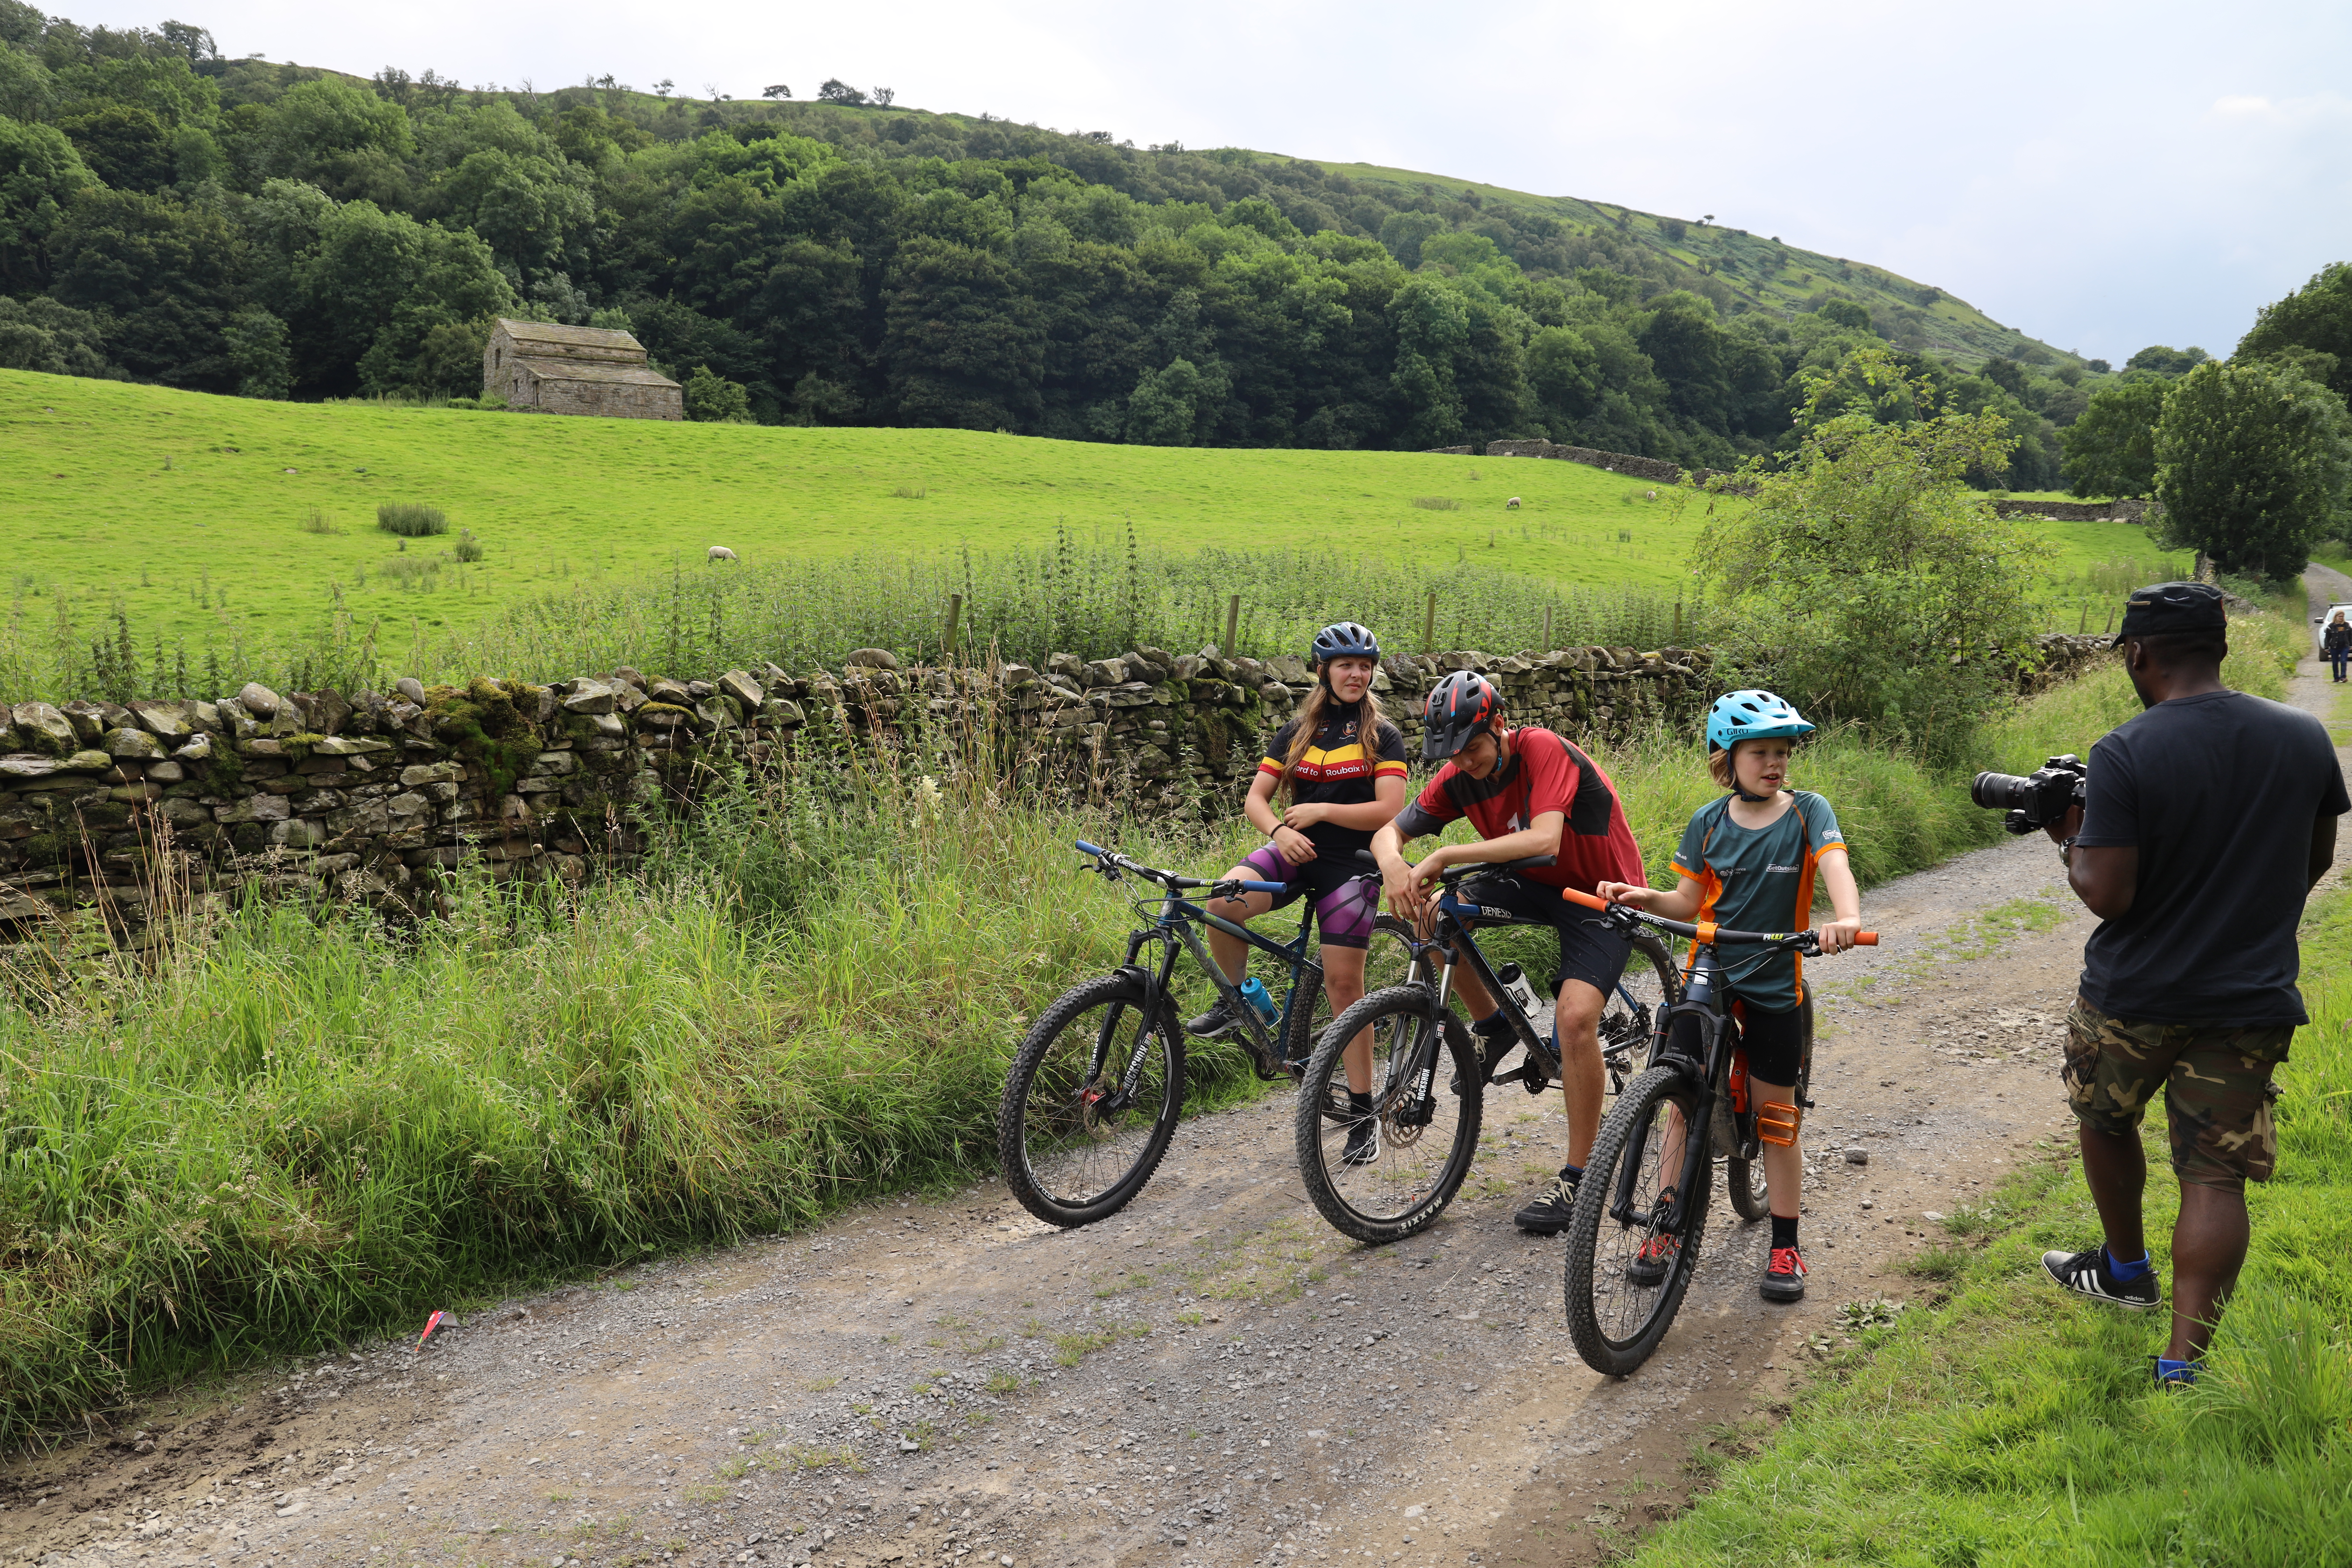 Three young mountain bikers filmed on bikes for Cycle the Dales promotional video with Pocket Projects